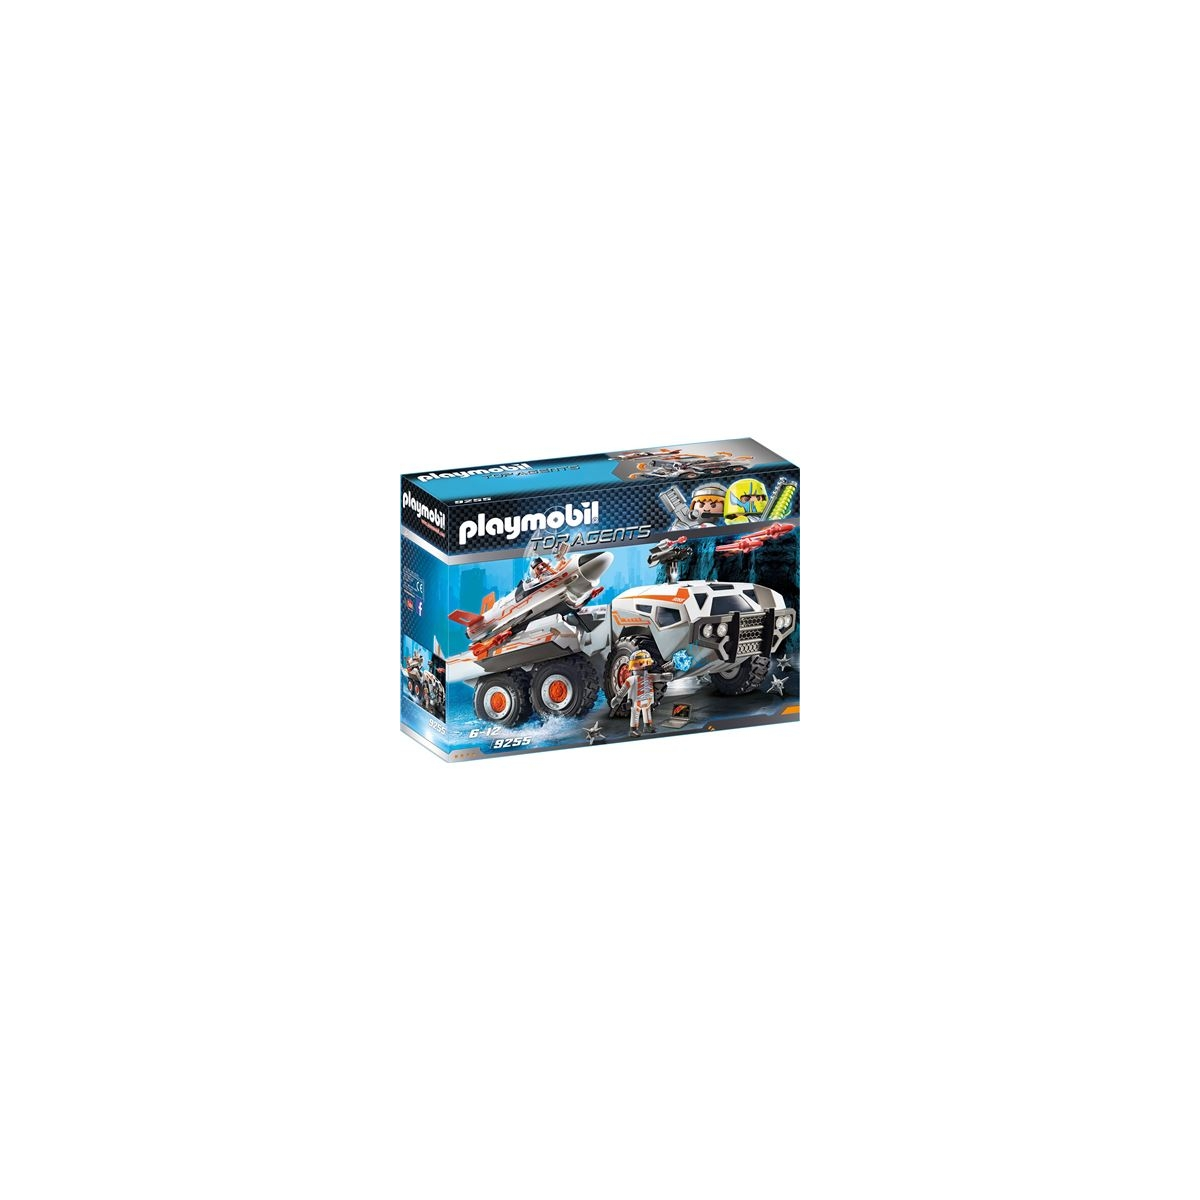 Playmobil® 9255 - Top Agents - Spy Team Battle Truck. Loading zoom